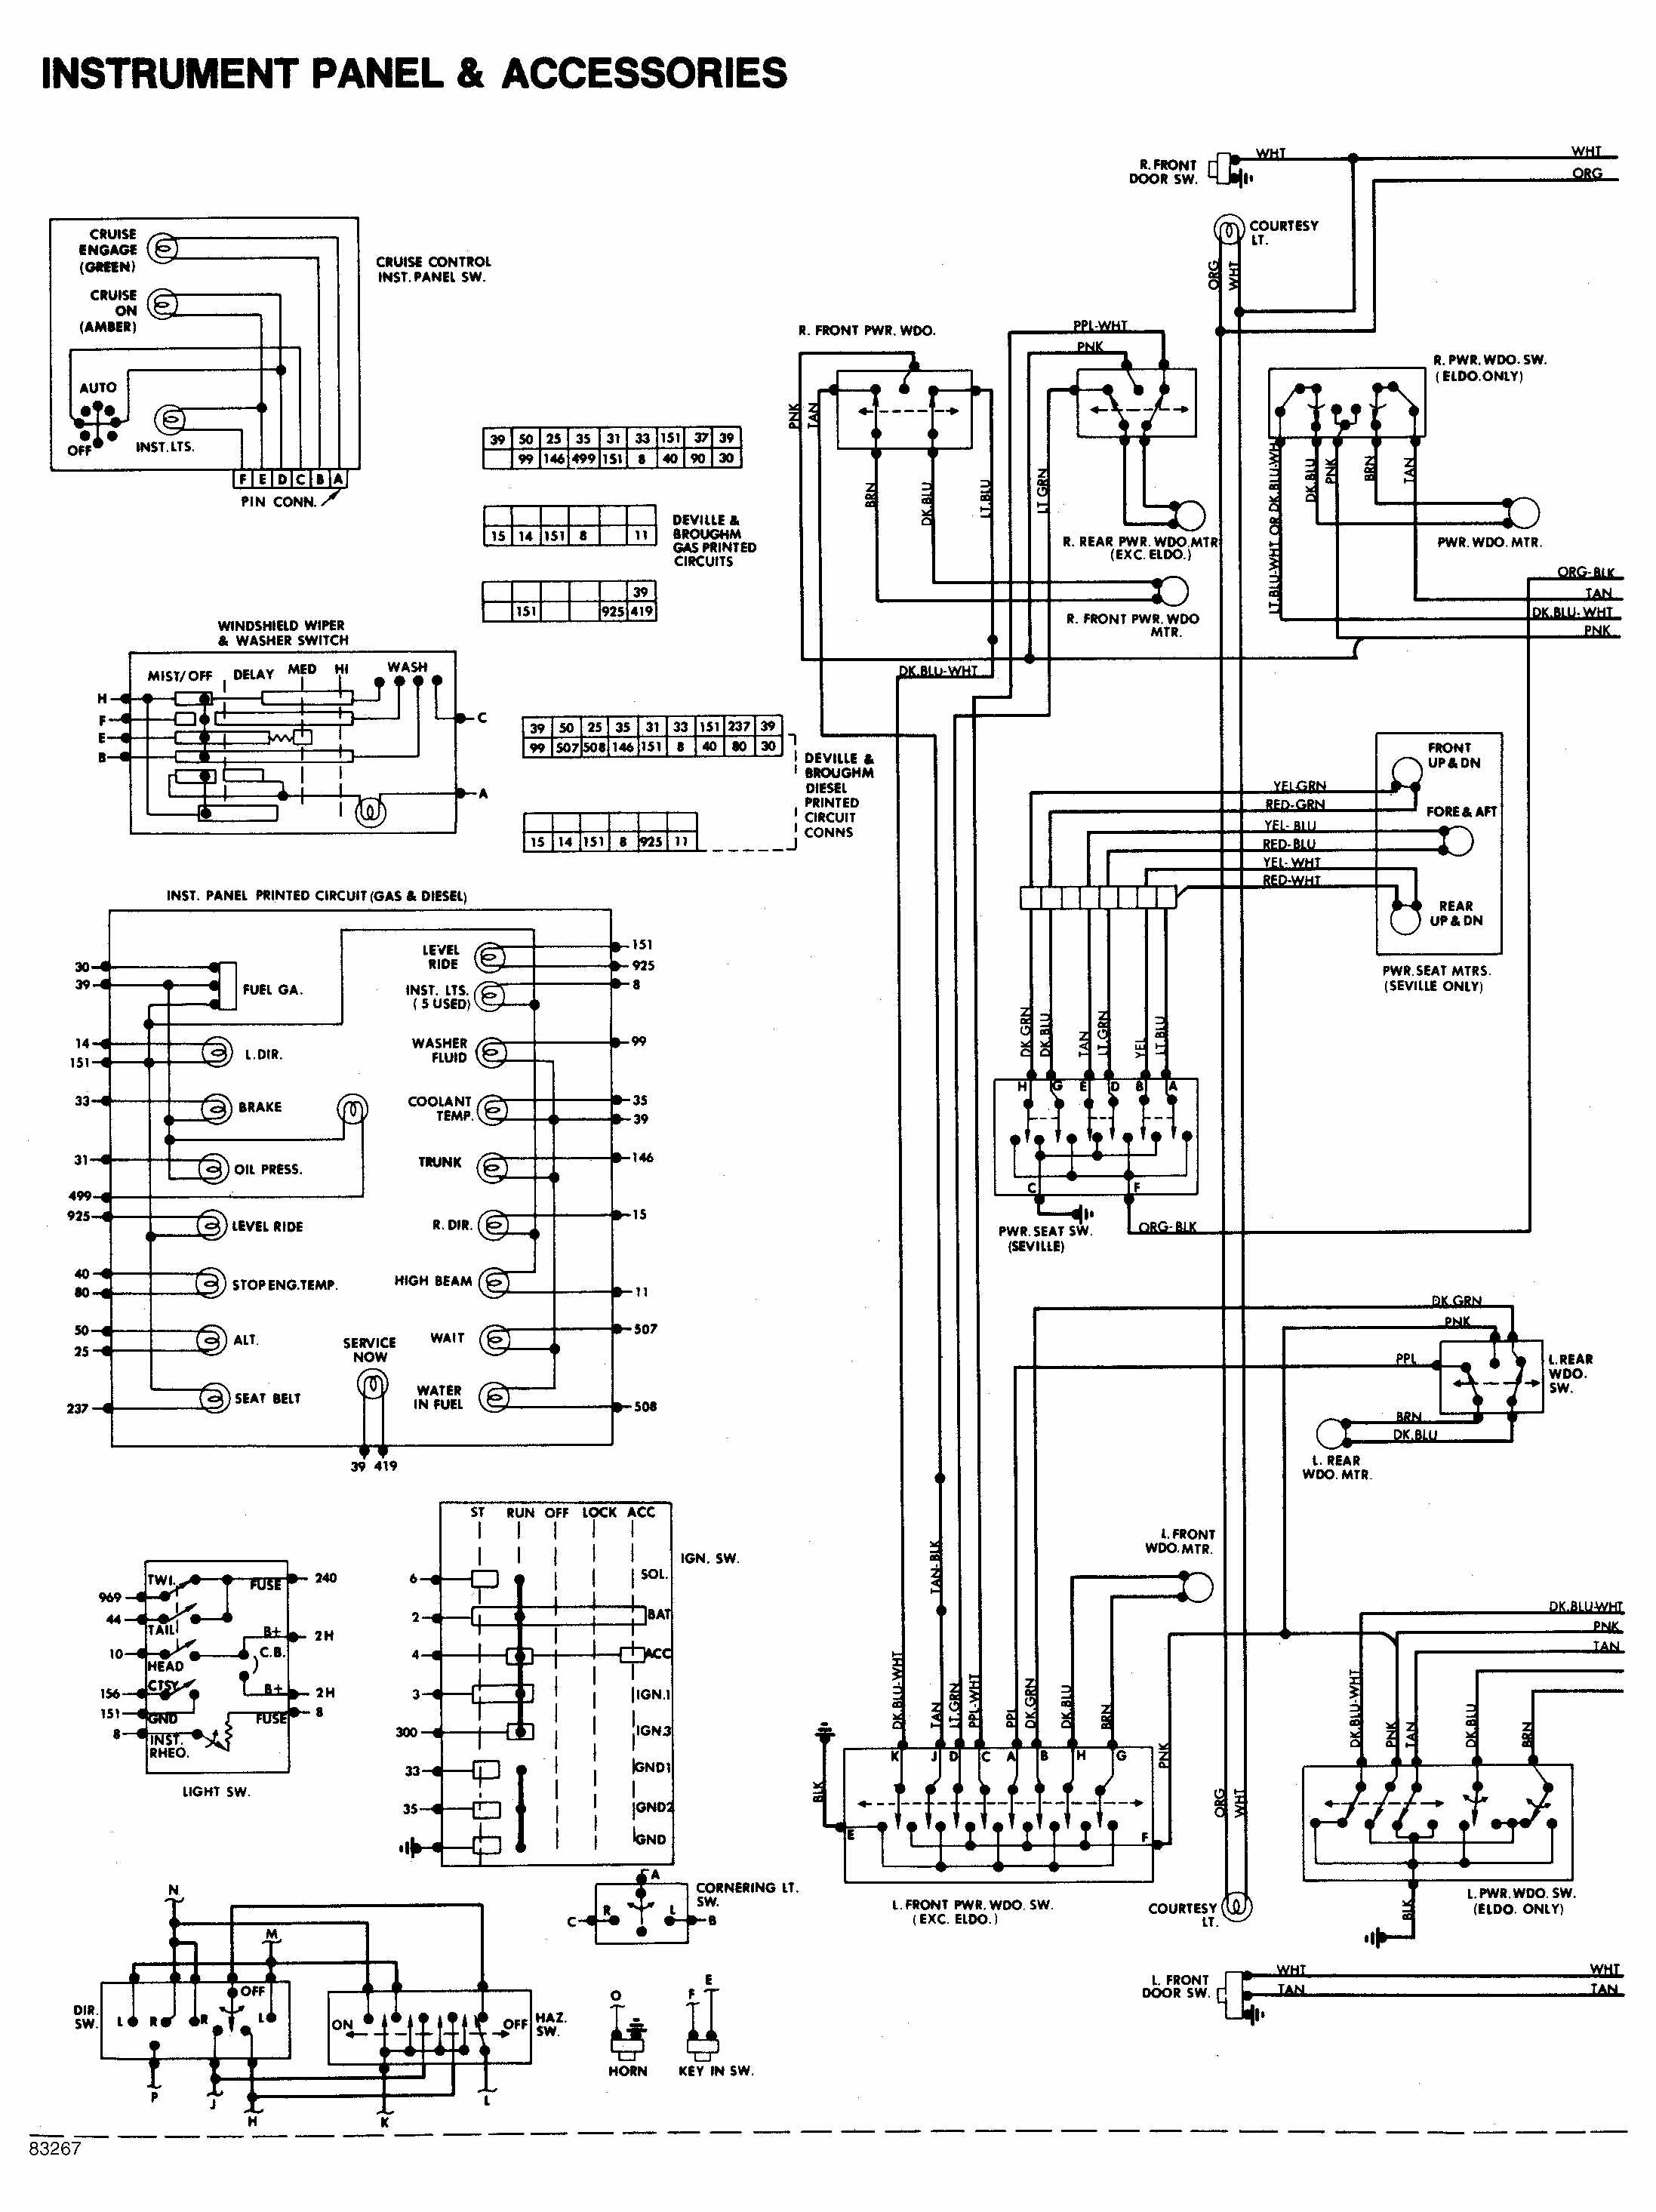 instrument panel and accessories wiring diagram of 1984 cadillac deville 1969 mustang instrument panel diagram wiring schematic on 1969 1969 mustang wiring diagram at honlapkeszites.co